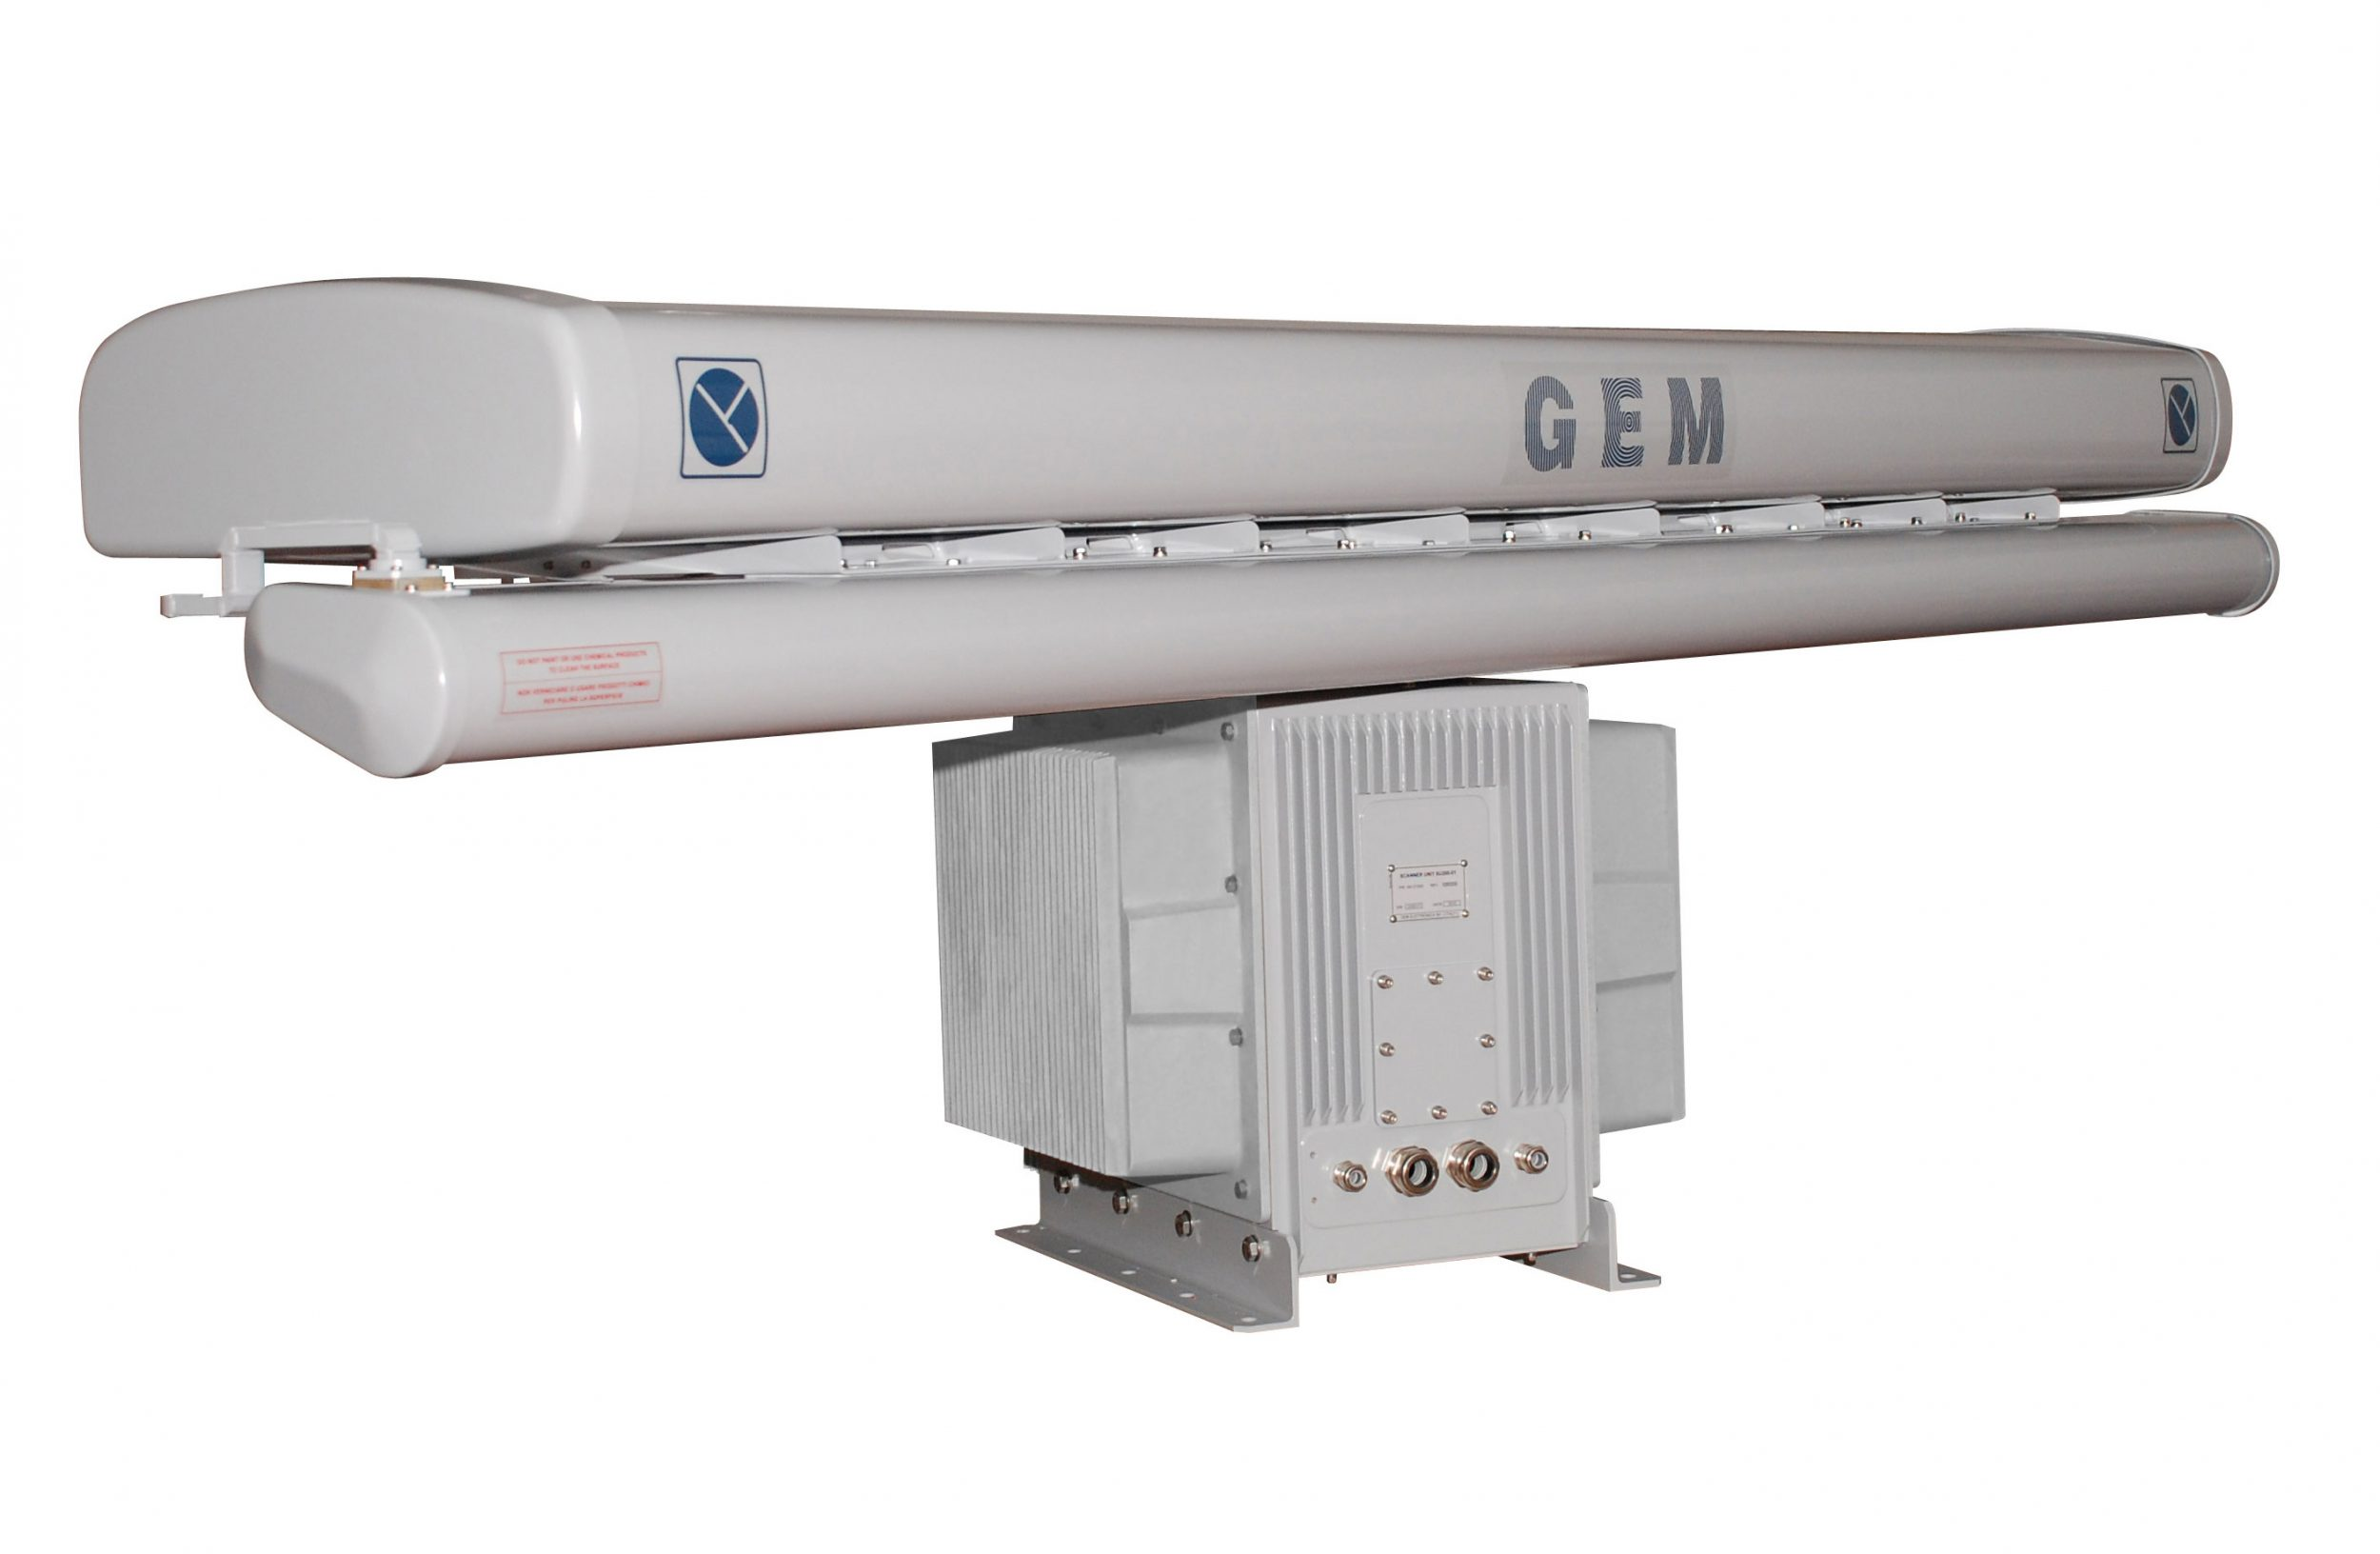 GEMINI DB - X-Ka DUAL BAND RADAR SYSTEMS